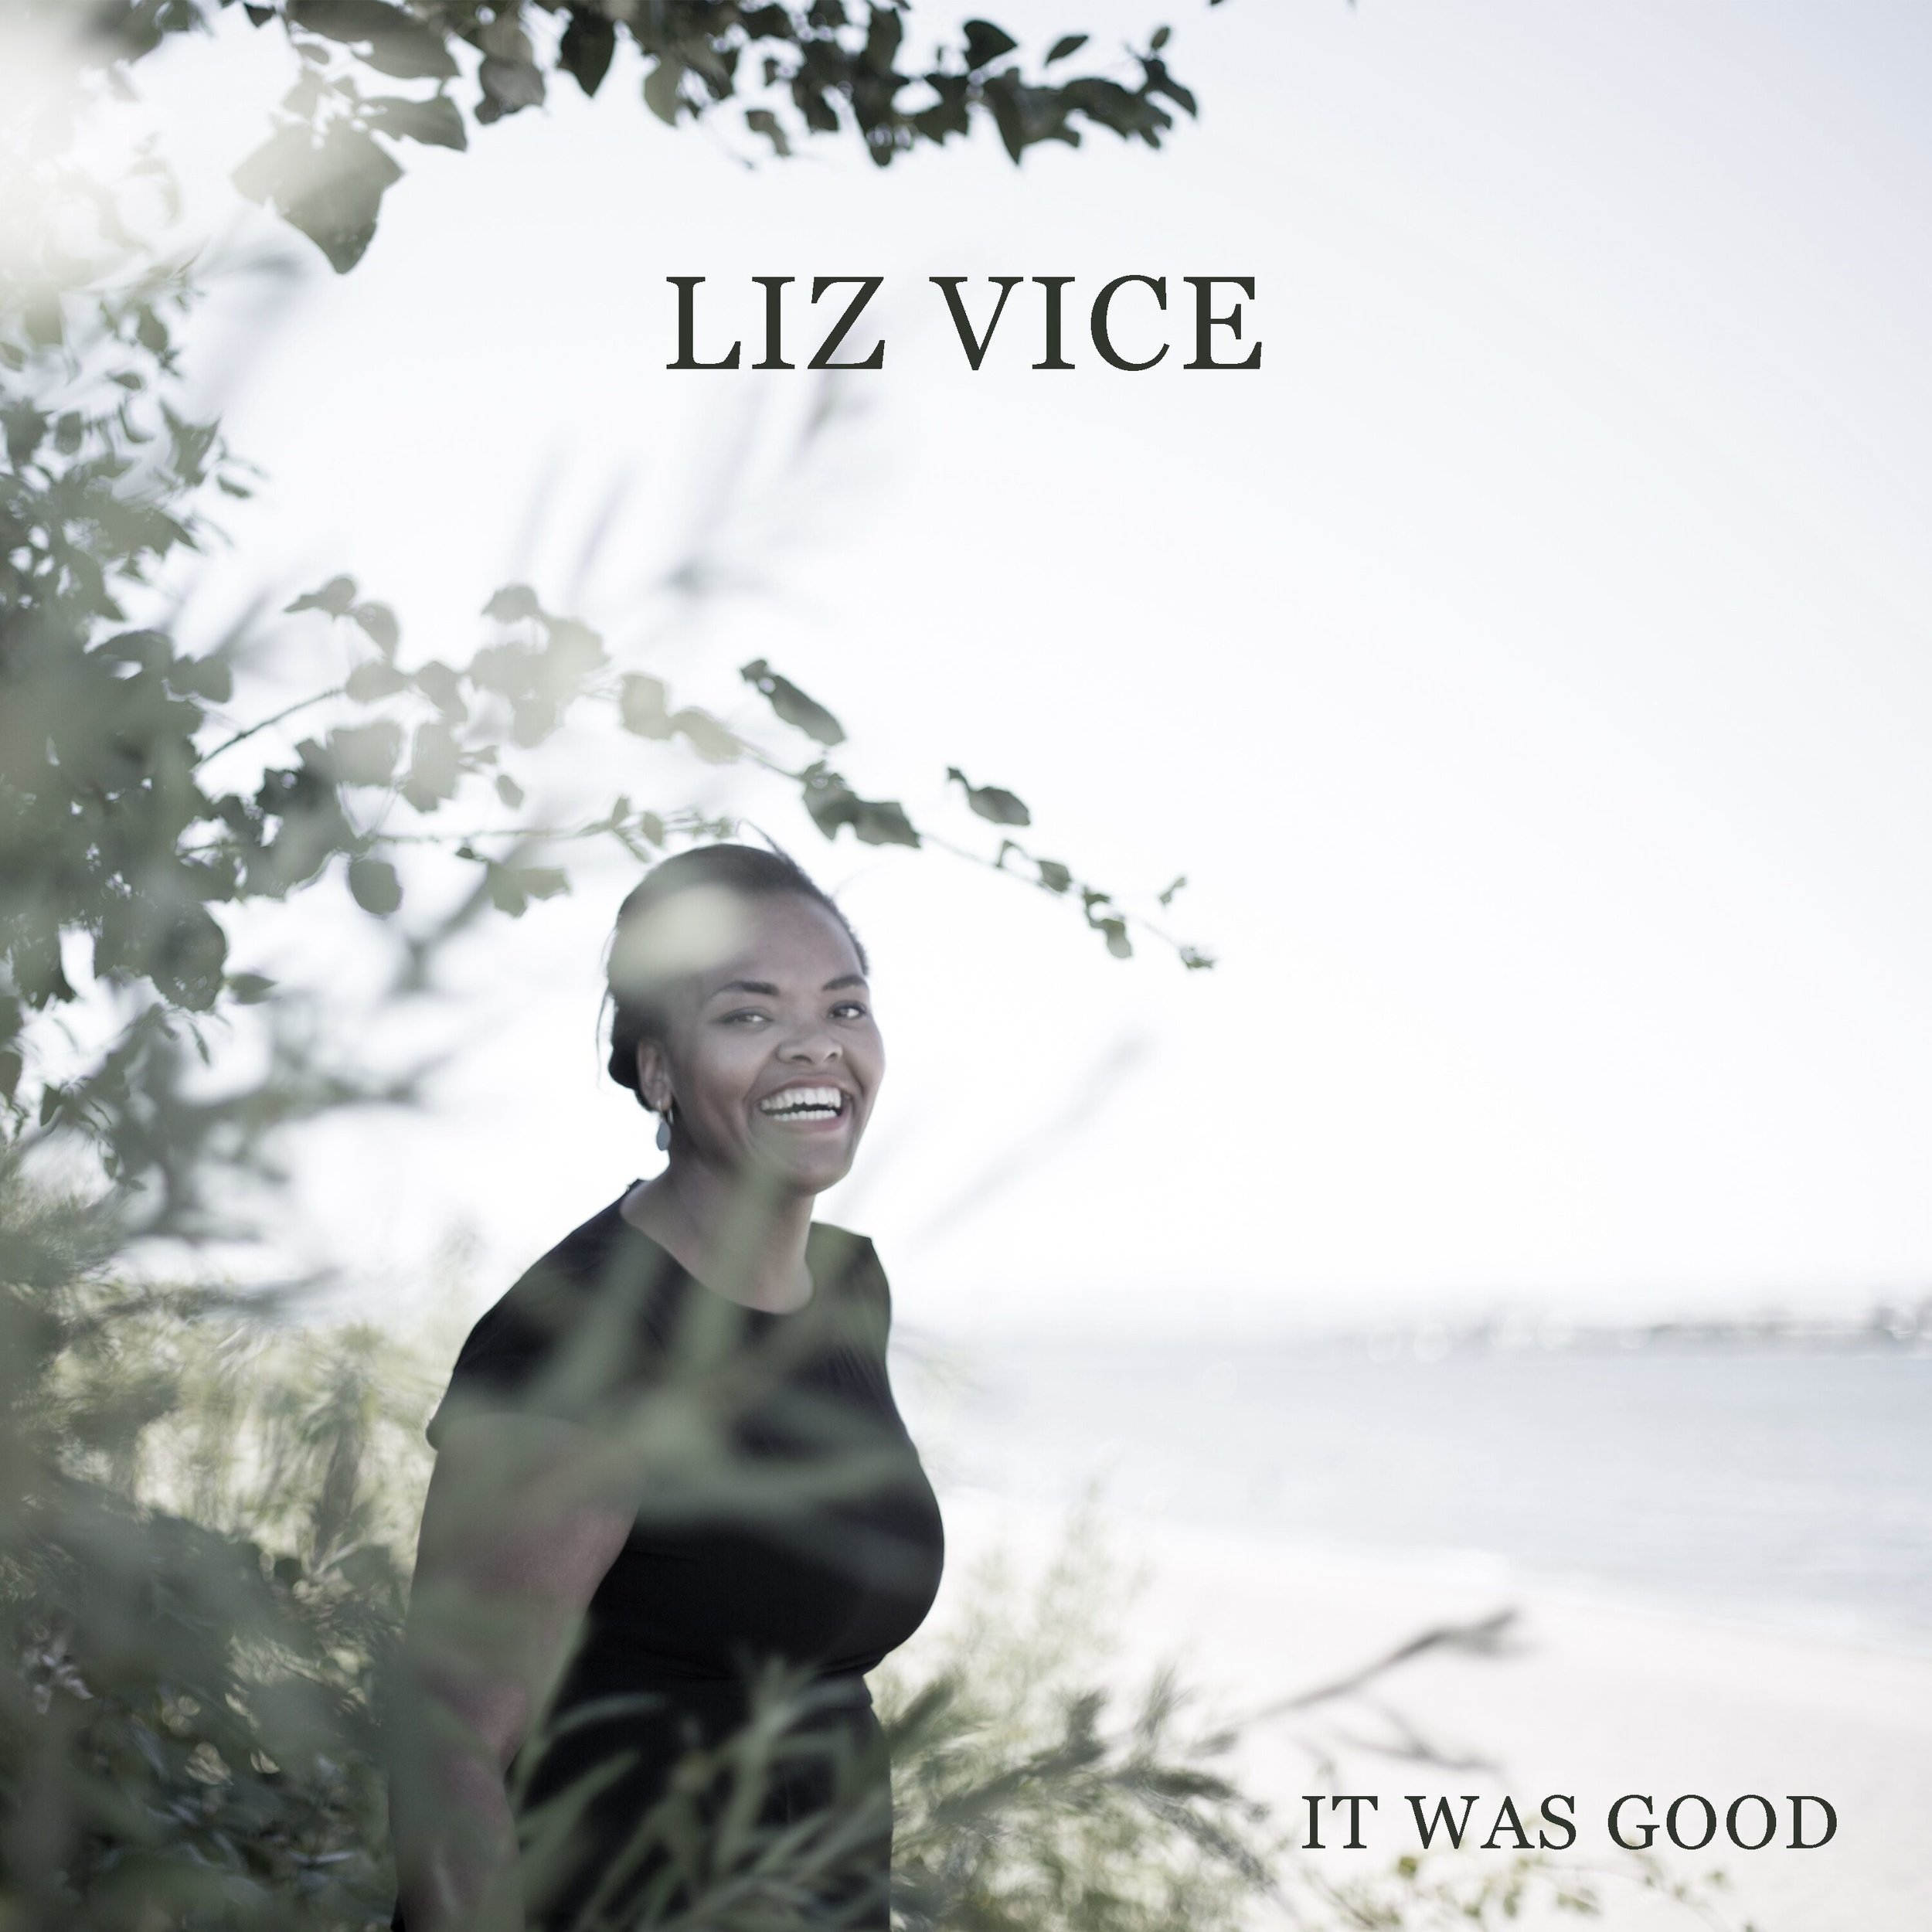 liz-vice-it-was-good.jpg